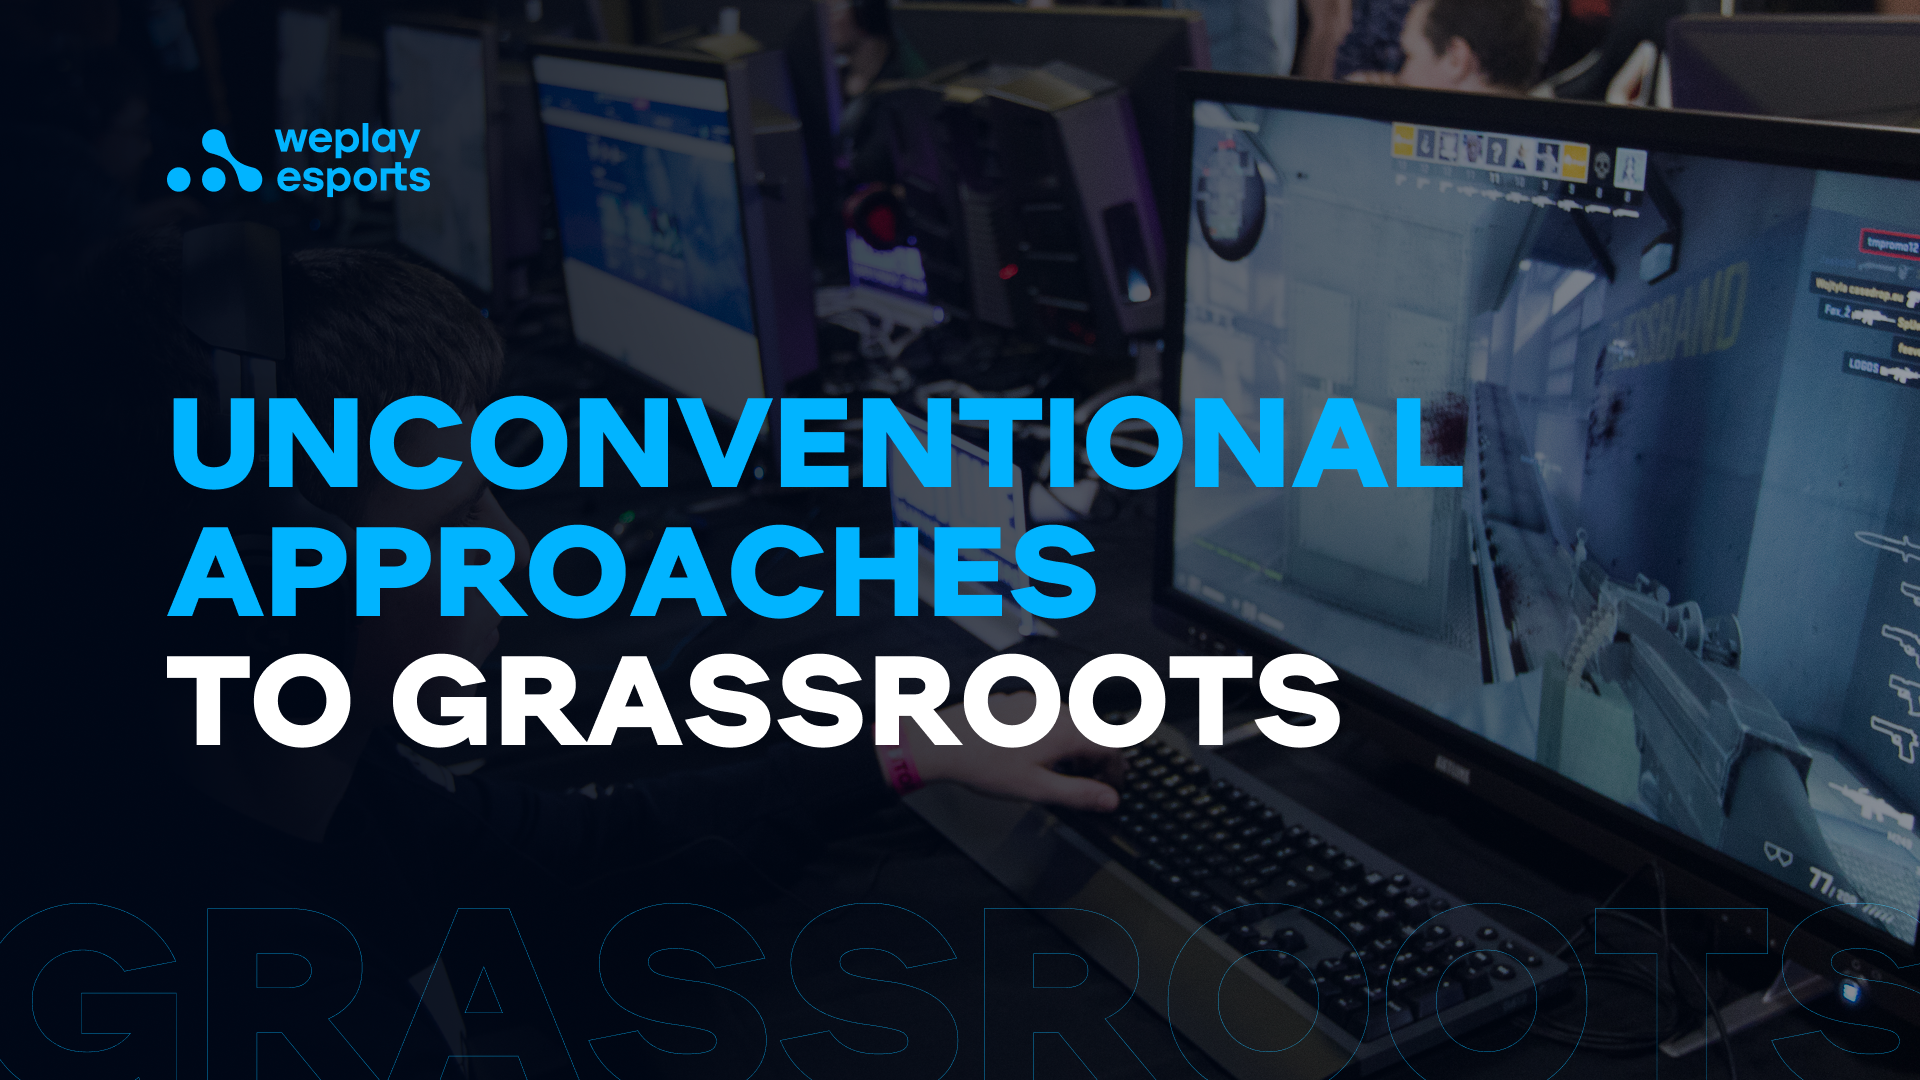 Unconventional approaches to grassroots